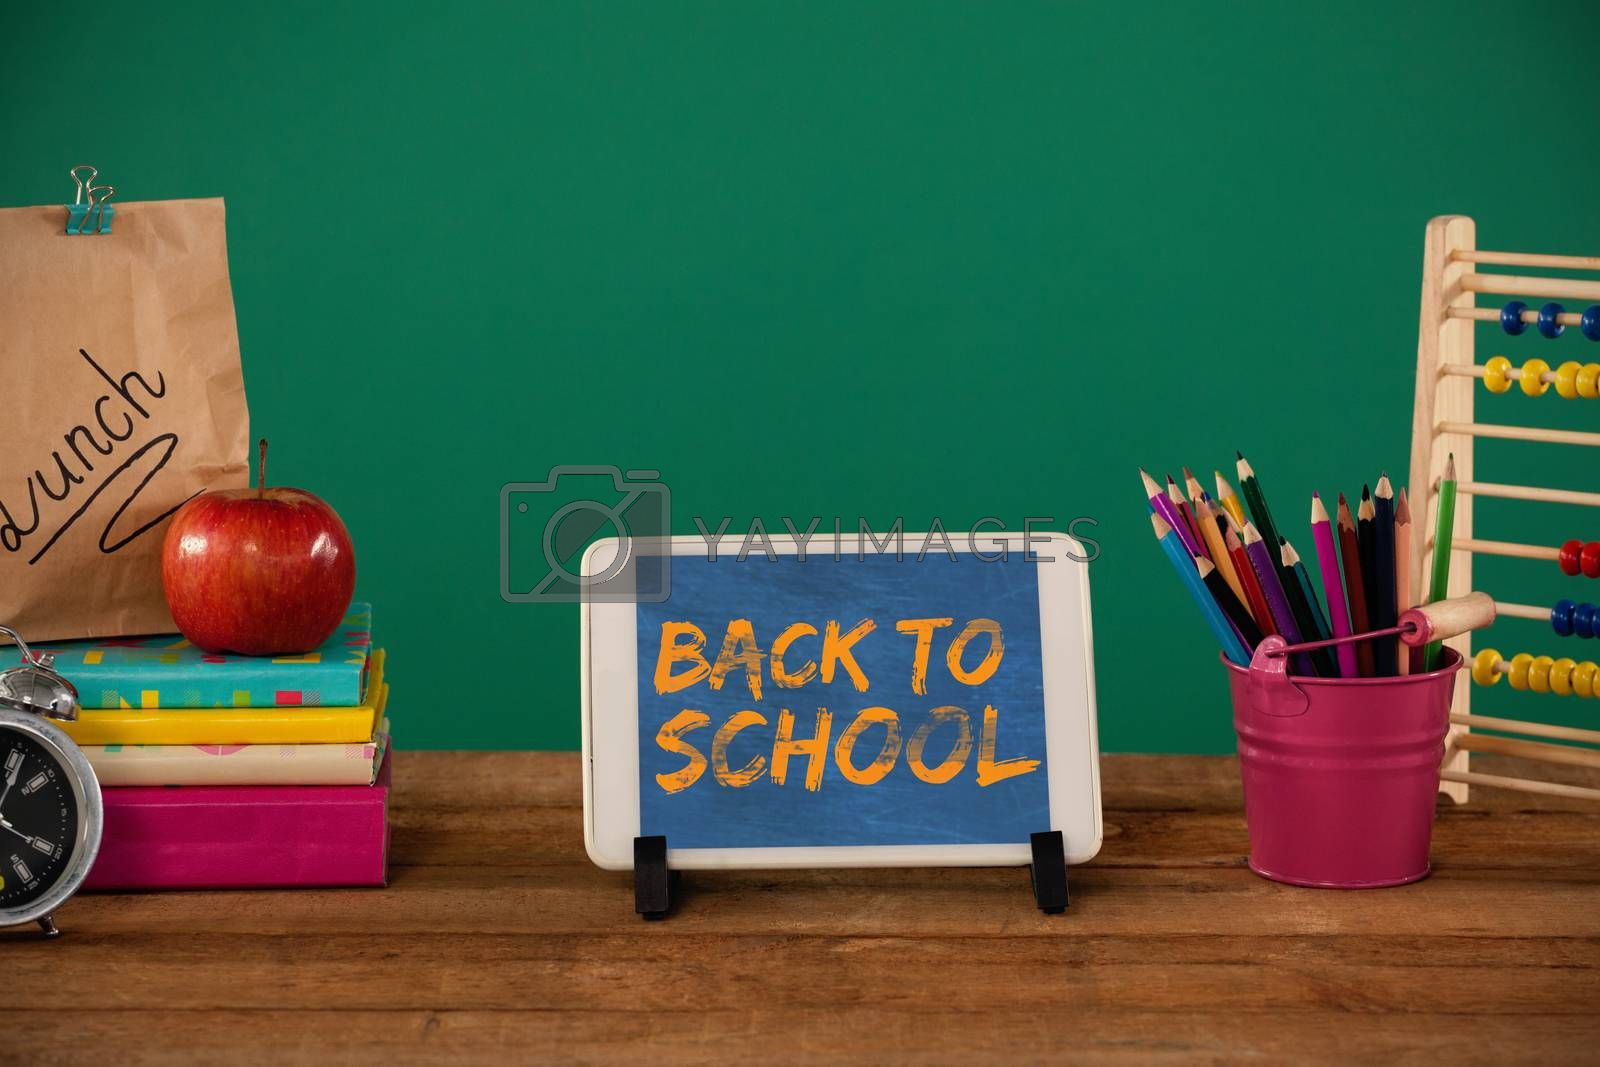 Composite image of graphic image of red back to school text by Wavebreakmedia